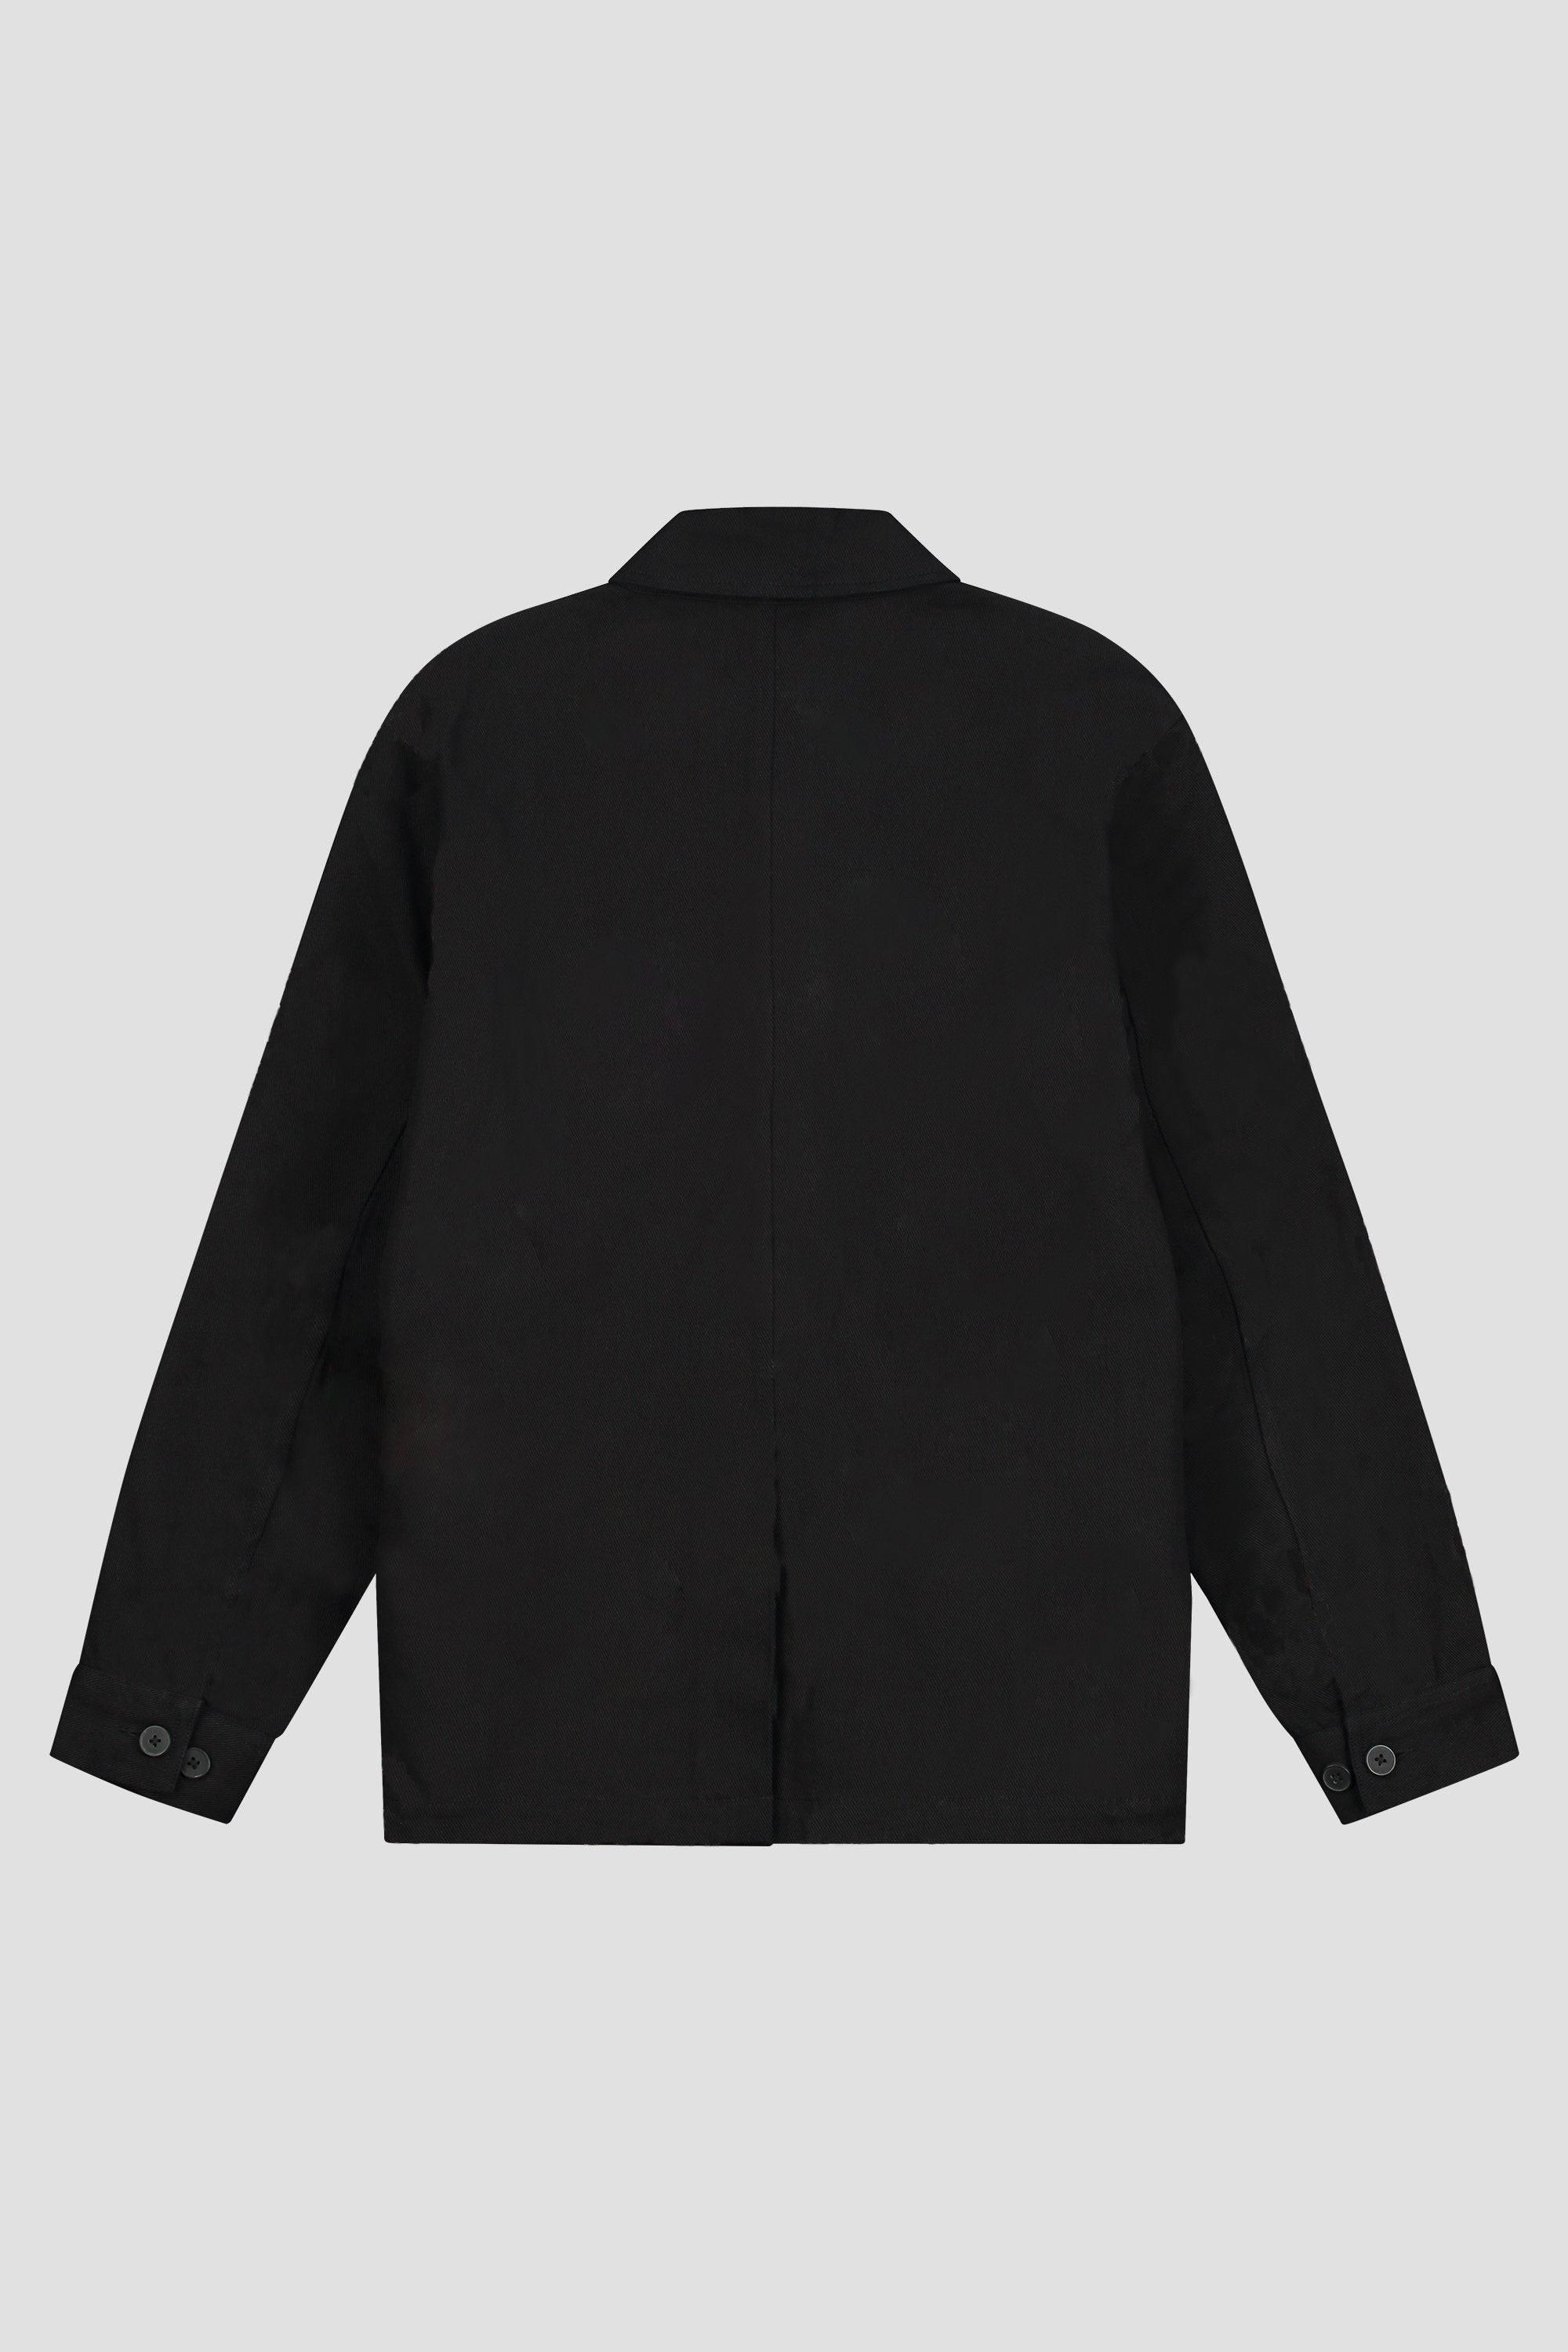 ØLÅF Workwear Jacket - Black